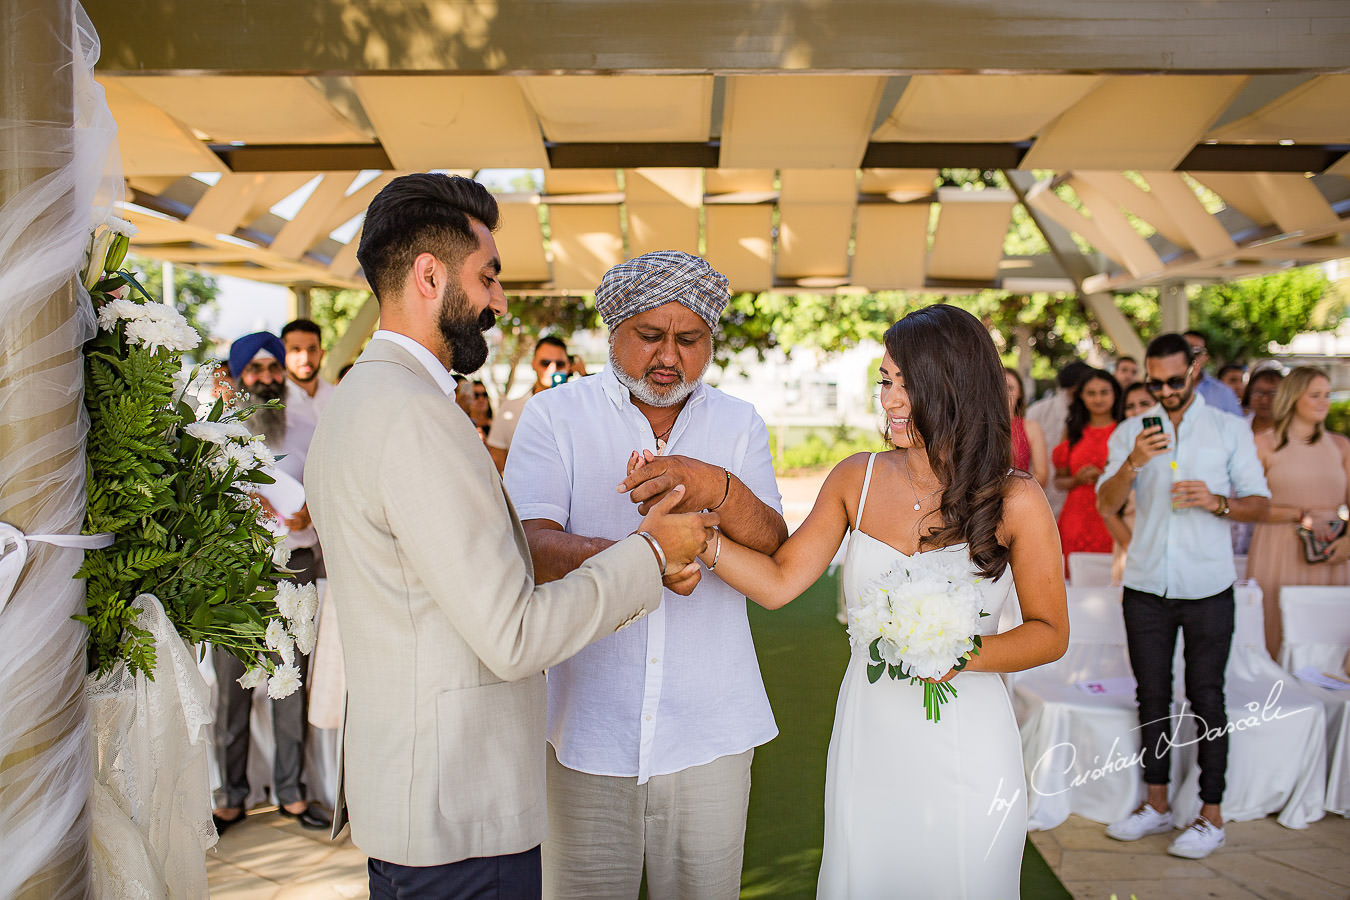 The father of the bride giving his blessings before the wedding ceremony, moments photographed by Cristian Dascalu at Athena Beach Hotel in Paphos, Cyprus, during a symbolic wedding.